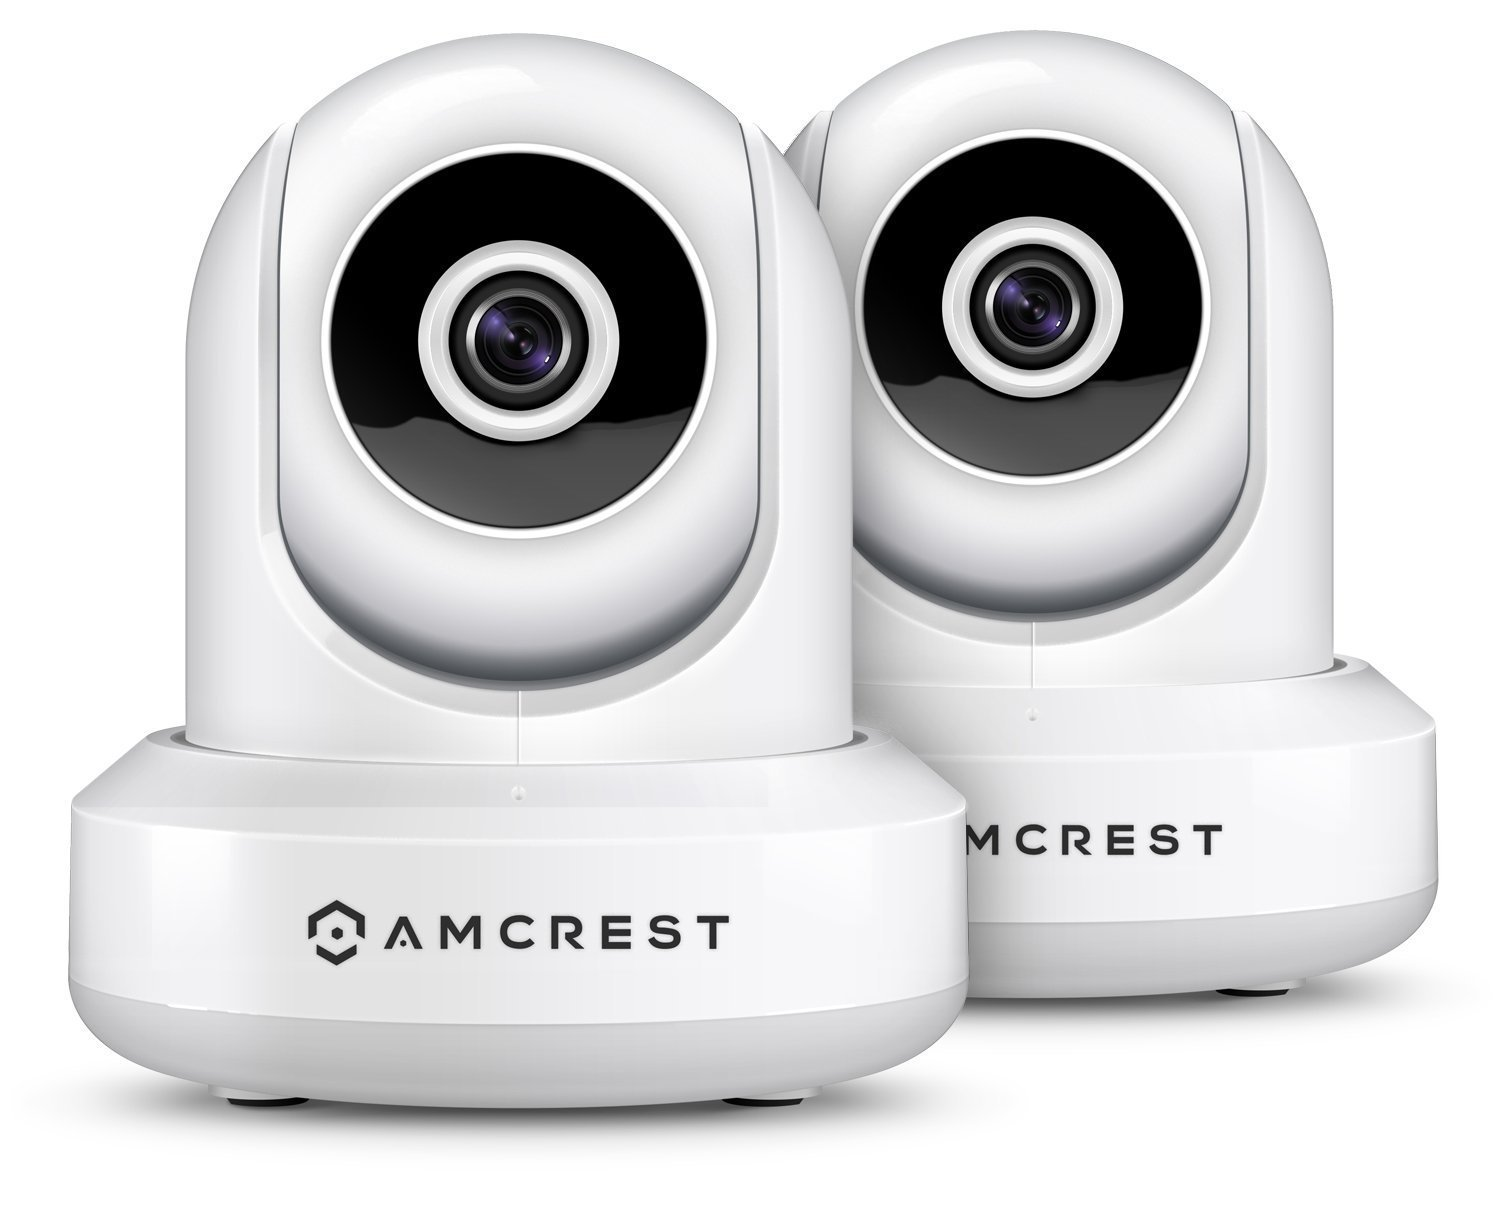 2-Pack Amcrest ProHD IP2M-841EW 1080P POE (Power Over Ethernet) IP Camera w/ Pan/Tilt, Two-Way Audio, 90 Degree FOV, (White)